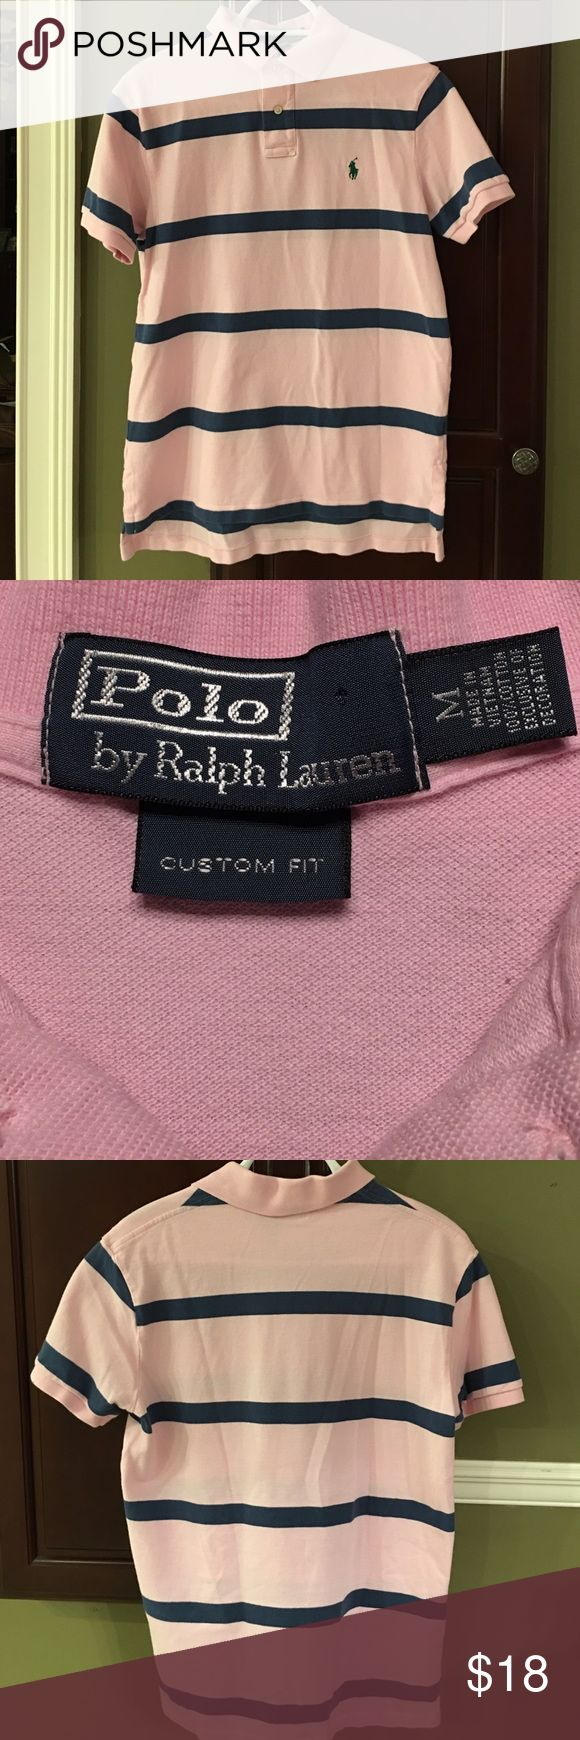 EUC Men's Pink Ralph Lauren Striped Polo - Size M Great looking Men's Pink with Blue Stripes Ralph Lauren polo shirt in a size Medium. No stains or tears. Polo by Ralph Lauren Shirts Polos